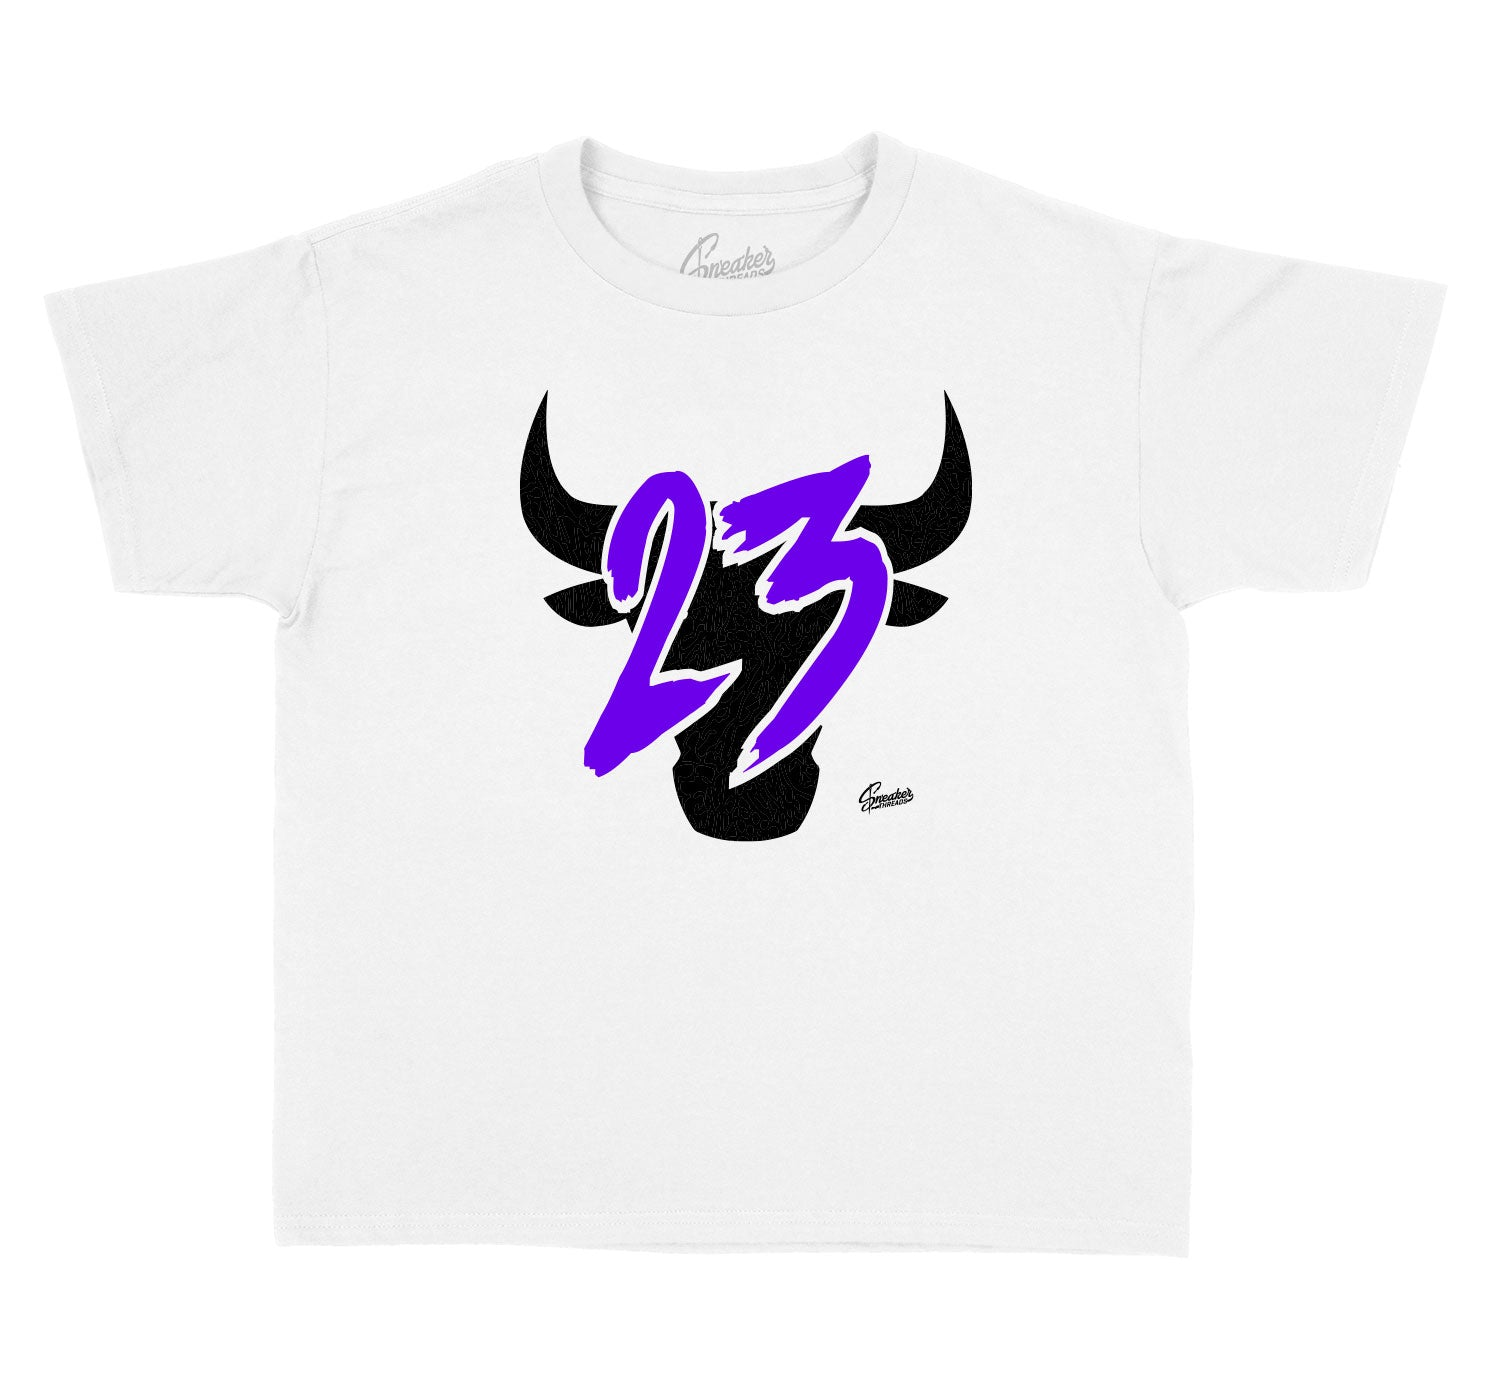 Kids tee collection matches with the sneaker Jordan 4 purple metallic sneaker collection